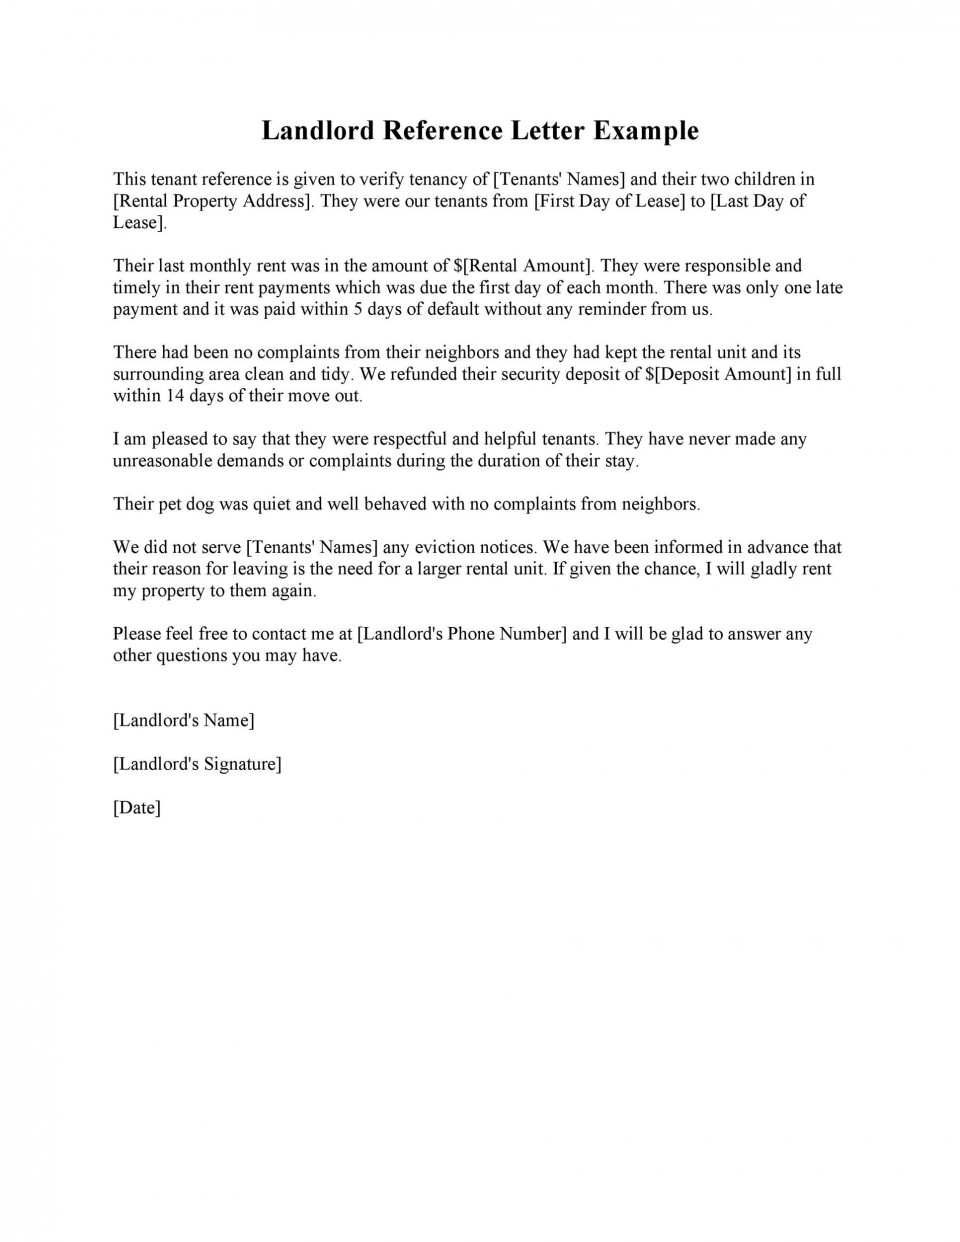 003 Best Free Reference Letter Template For Landlord Image  Rental960